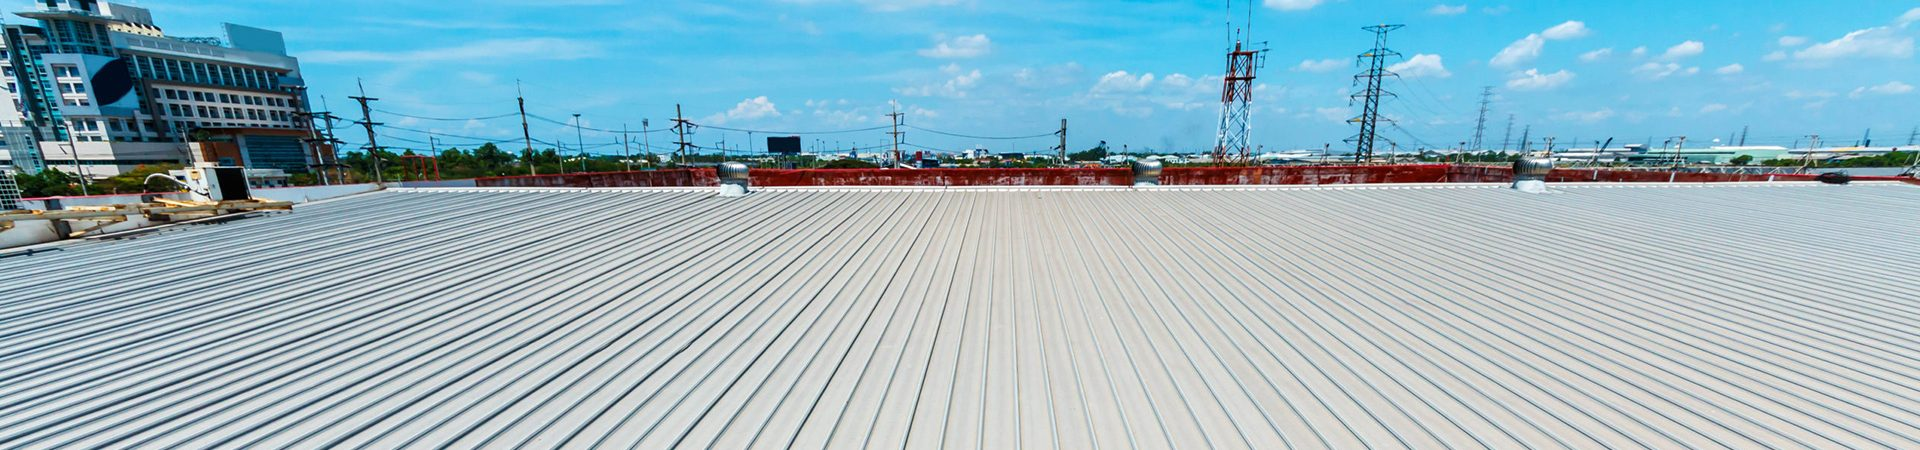 Roof Toppers Commercial Roofing